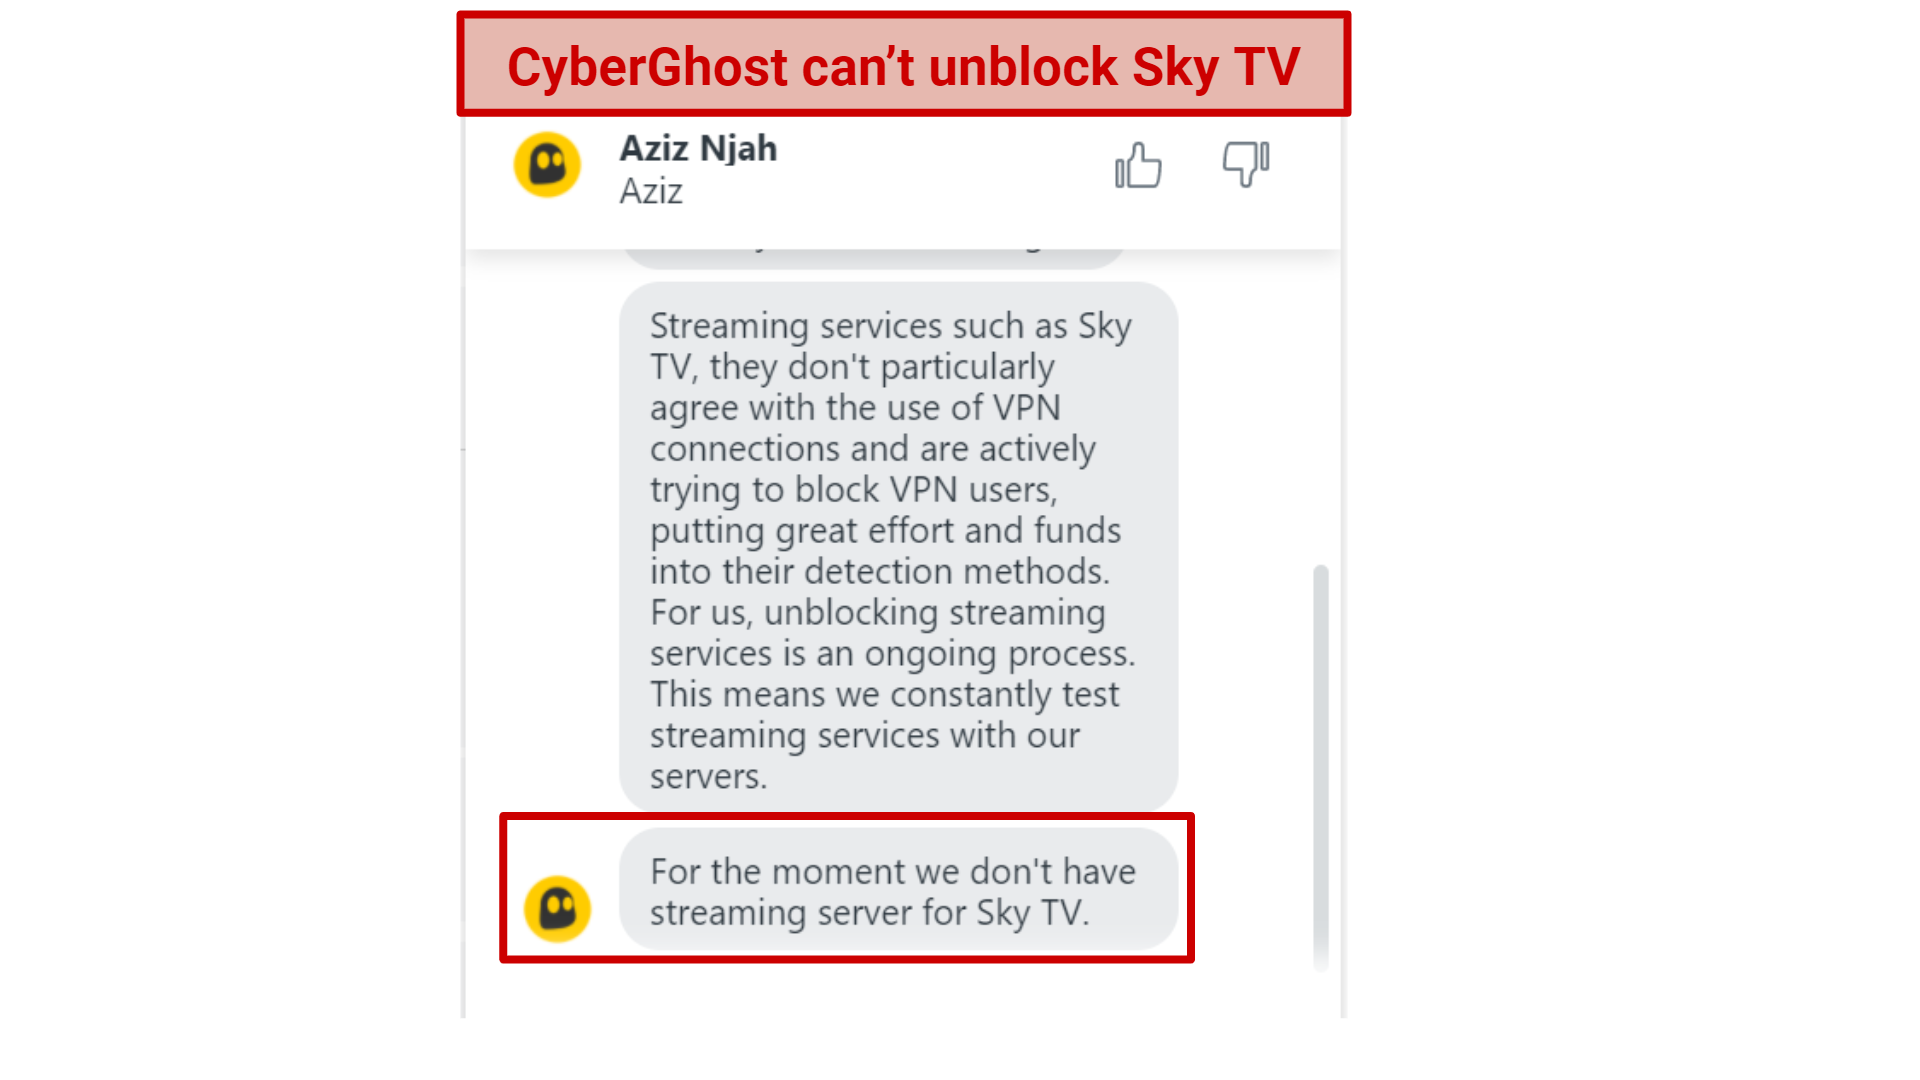 A screenshot of CyberGhost's live chat agent saying it can't unblock Sky TV.